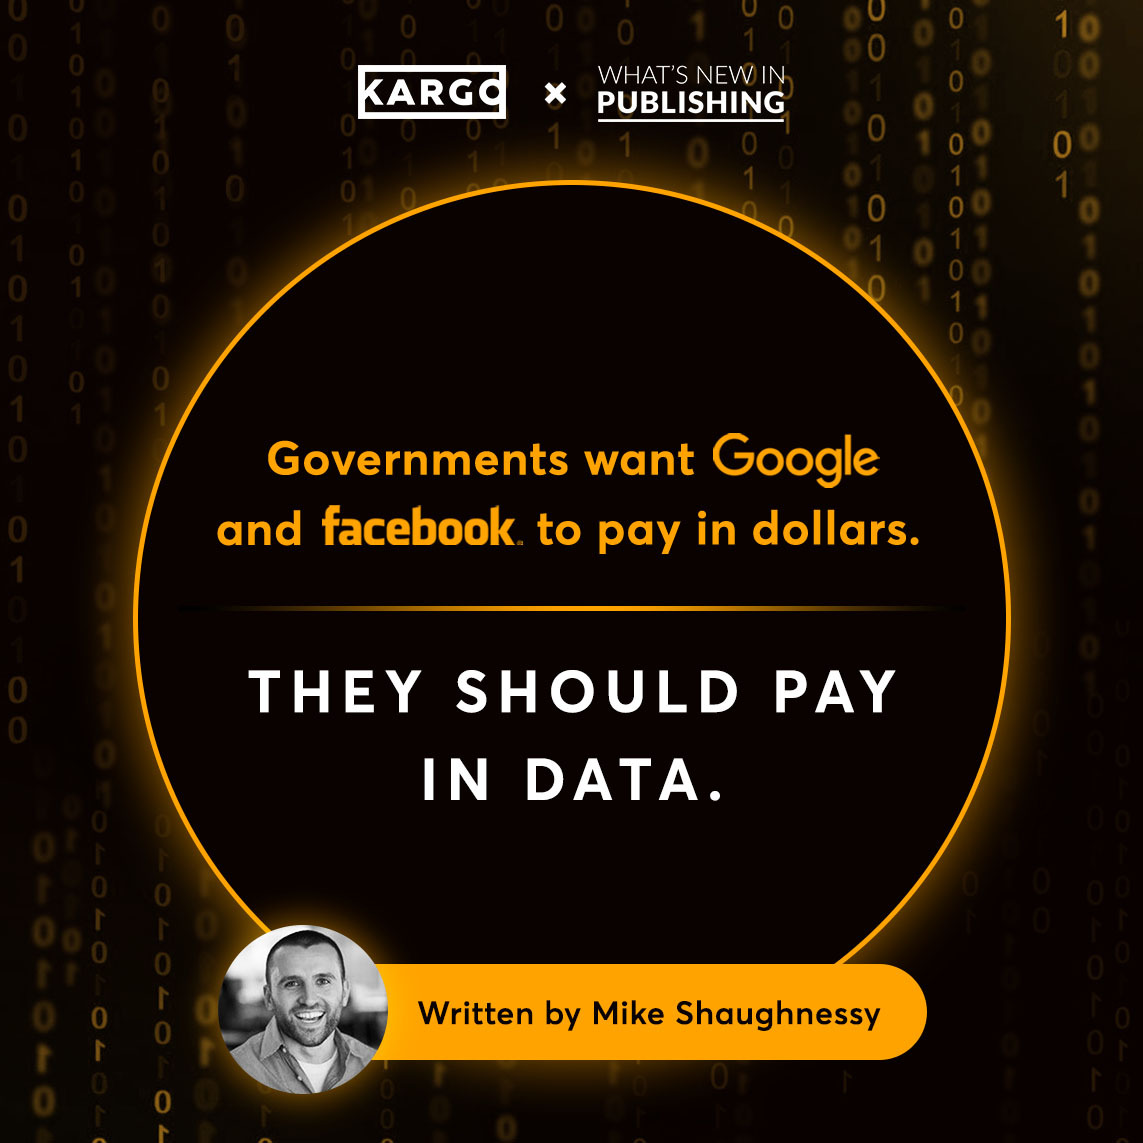 Governments want Google and Facebook to pay in dollars. They should pay in data.